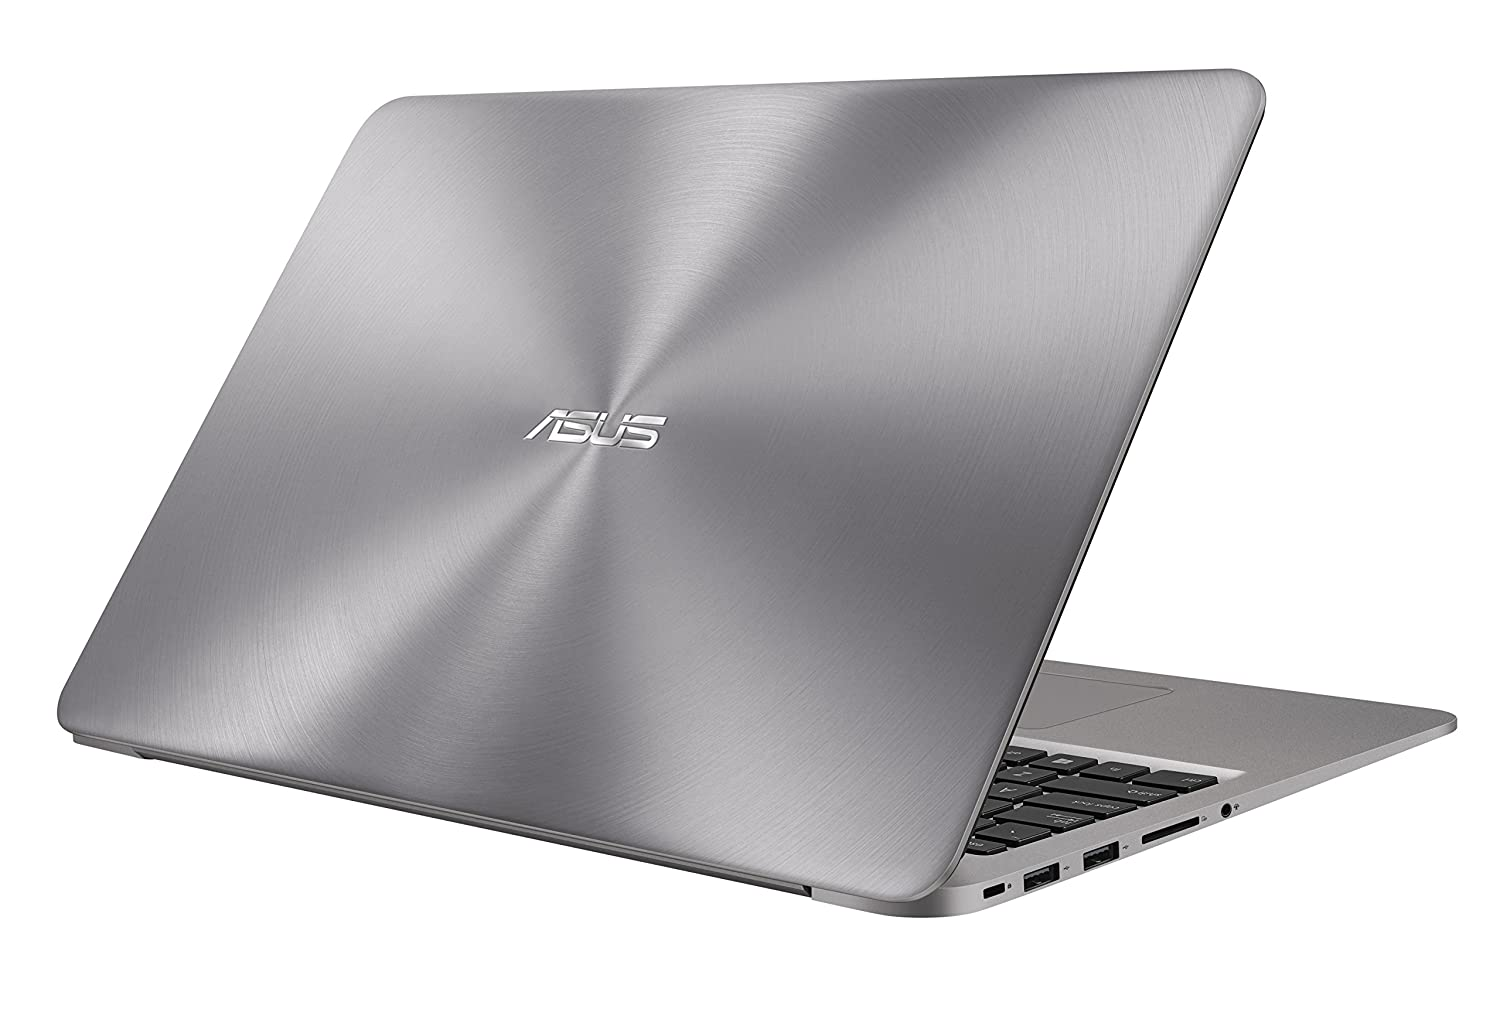 ASUS K93SV NOTEBOOK INTEL MANAGEMENT WINDOWS 7 DRIVER